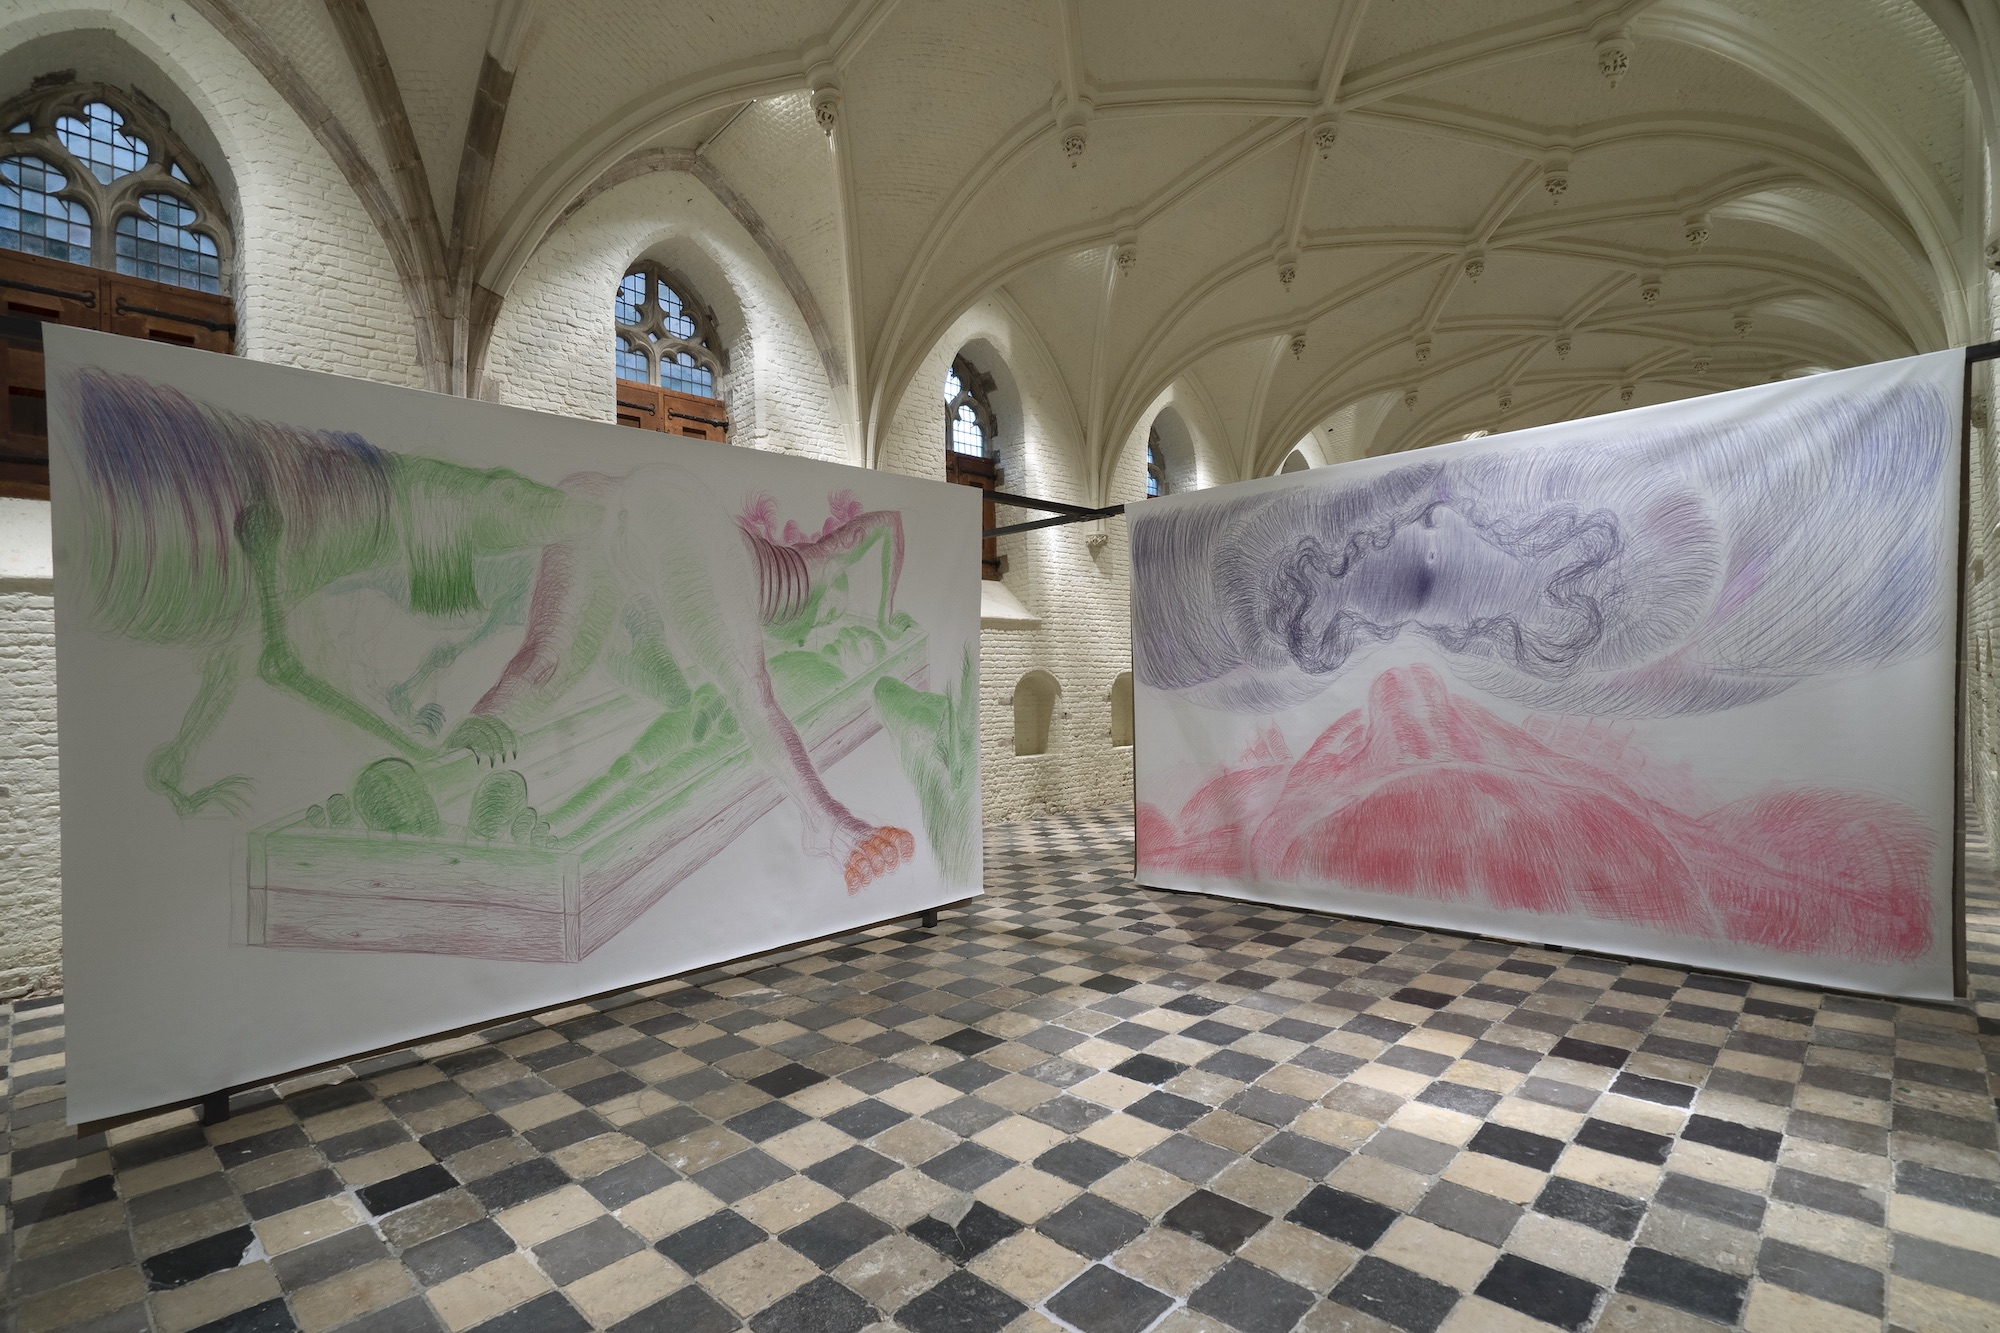 Vleeshal. As Long As The Potatoes Grow. Overview. Left: Arched. Right: Dying. (also: There and Here). Coloured pencil on linen. 300 x 500 cm, each. 2019. Photo: Leo van Kampen.